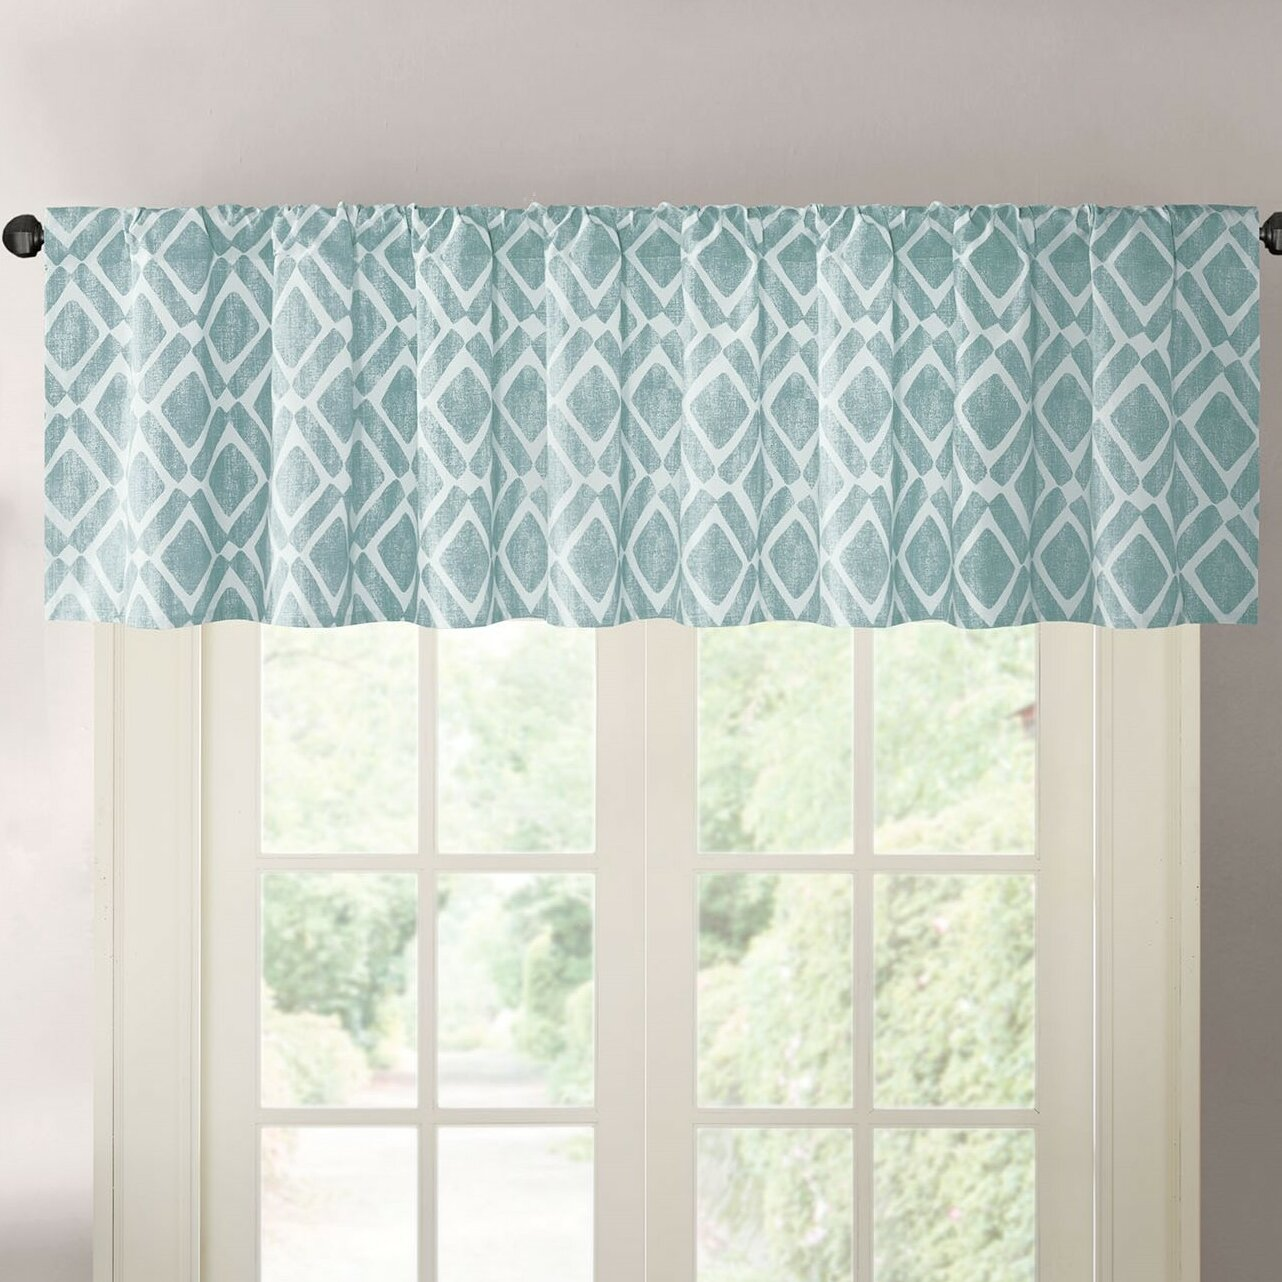 Varick Gallery Lippert Print Light-Filtering Curtain ...